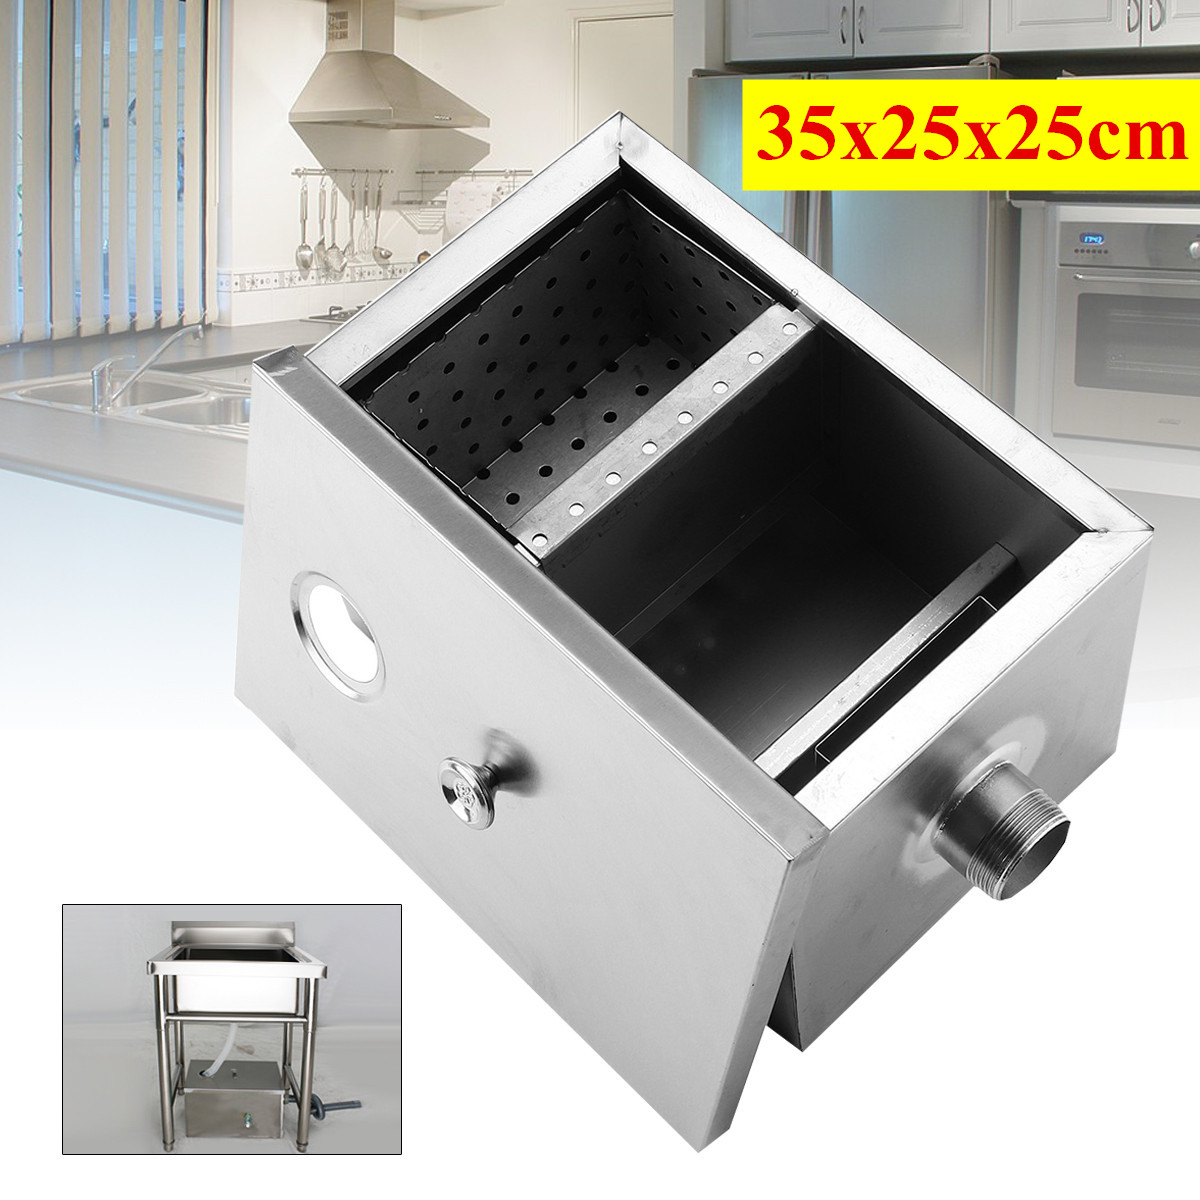 5GPM Gallon Per Minute Grease Trap Stainless Steel Interceptor Filter Kit for Restaurant Kitchen Wastewater